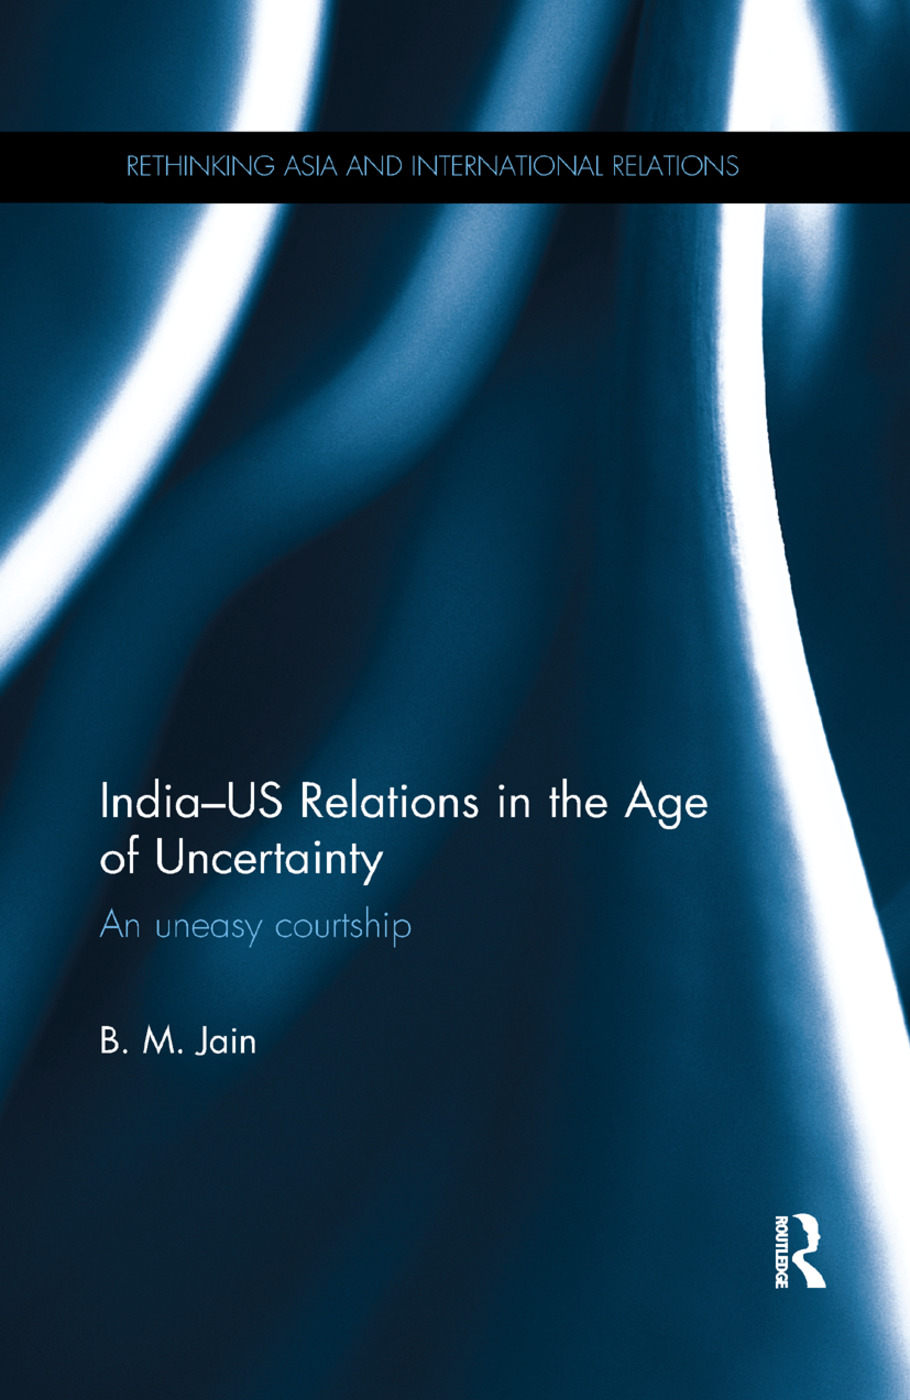 India-US Relations in the Age of Uncertainty: An uneasy courtship book cover